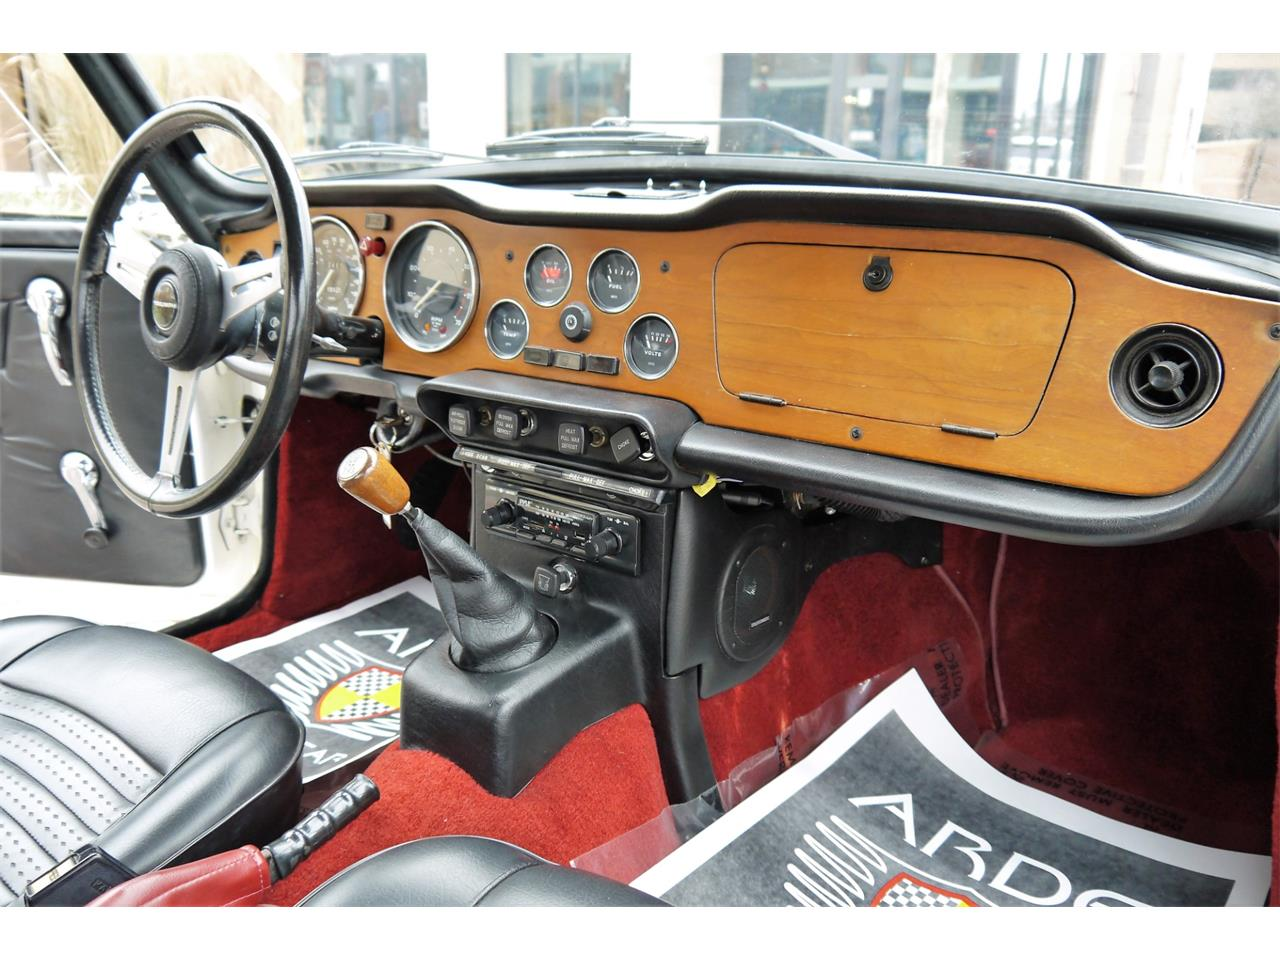 1976 Triumph TR6 for sale in Brentwood, TN – photo 12